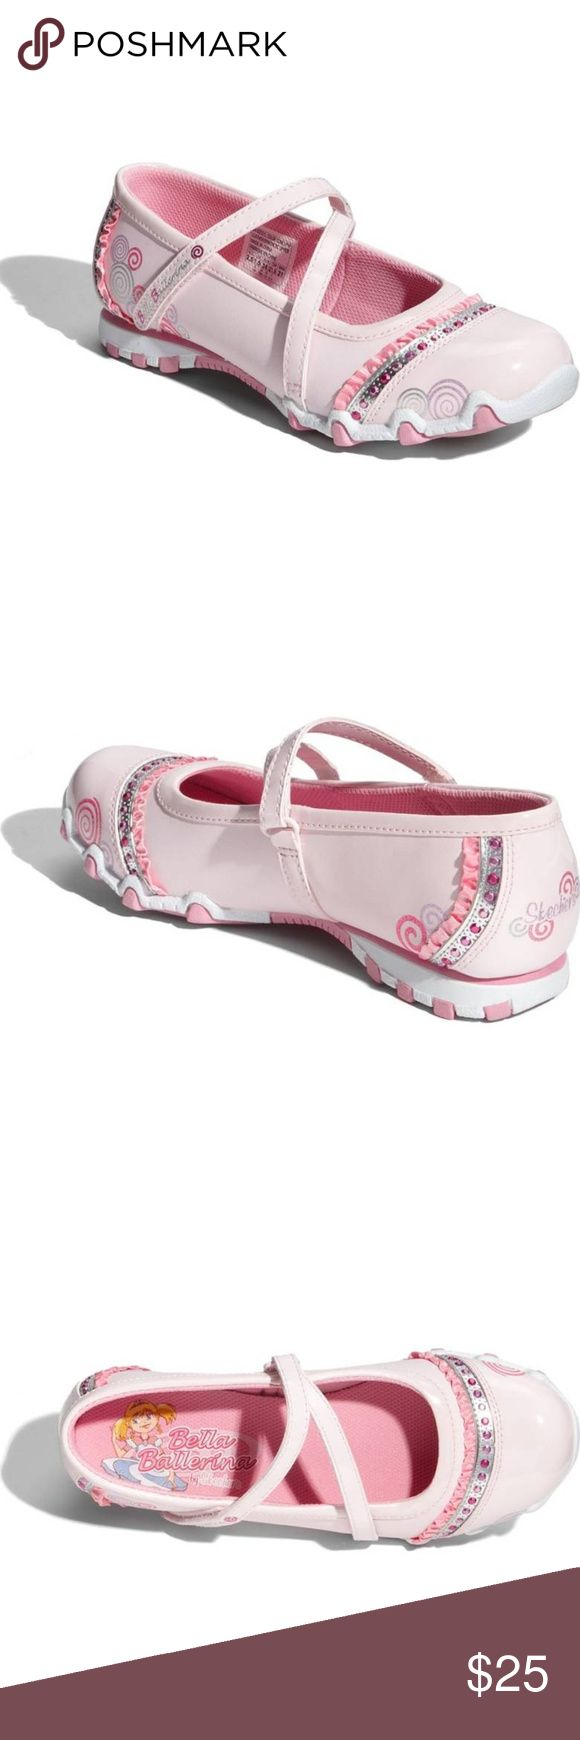 NWT! SKECHERS  'Bella Ballerina' leather Mary Jane Give new a twirl in the SKECHERS Bella Ballerina! Delightful swirls and sparkles adorn a ruffled mary jane outfitted with a special spot in the forefoot meant for tons of twirling time.  Leather and synthetic upper/textile lining/rubber sole. By Skechers; imported. Kids' Shoes. Item #388580 Skechers Shoes Sneakers